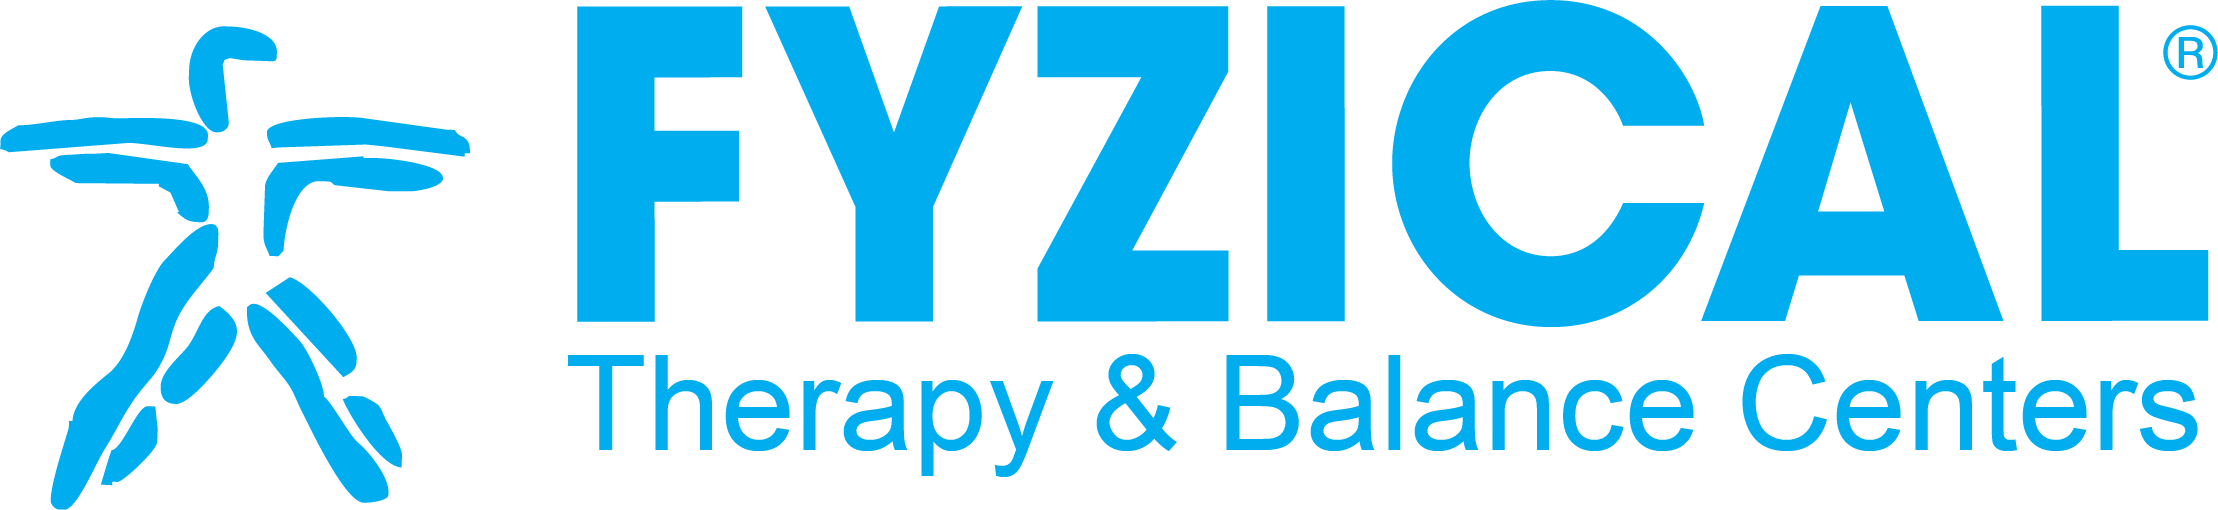 FYZICAL Therapy and Balance Centers Introduces Telehealth Services in Morgantown